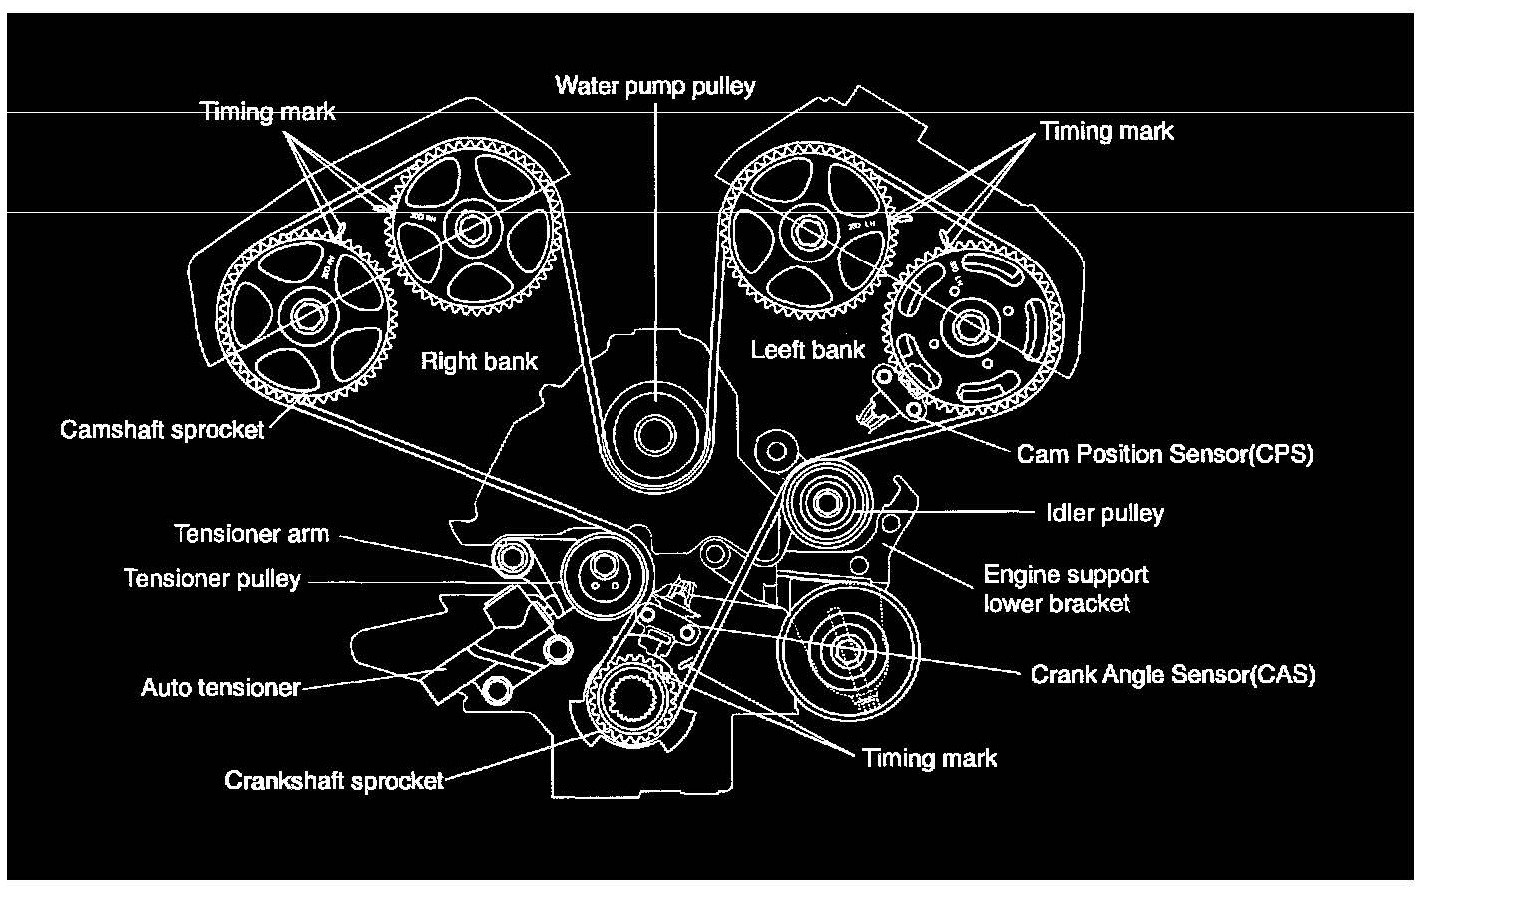 2004 kia sorento exhaust system diagram ford ka electrical wiring sedona questions - engine cargurus